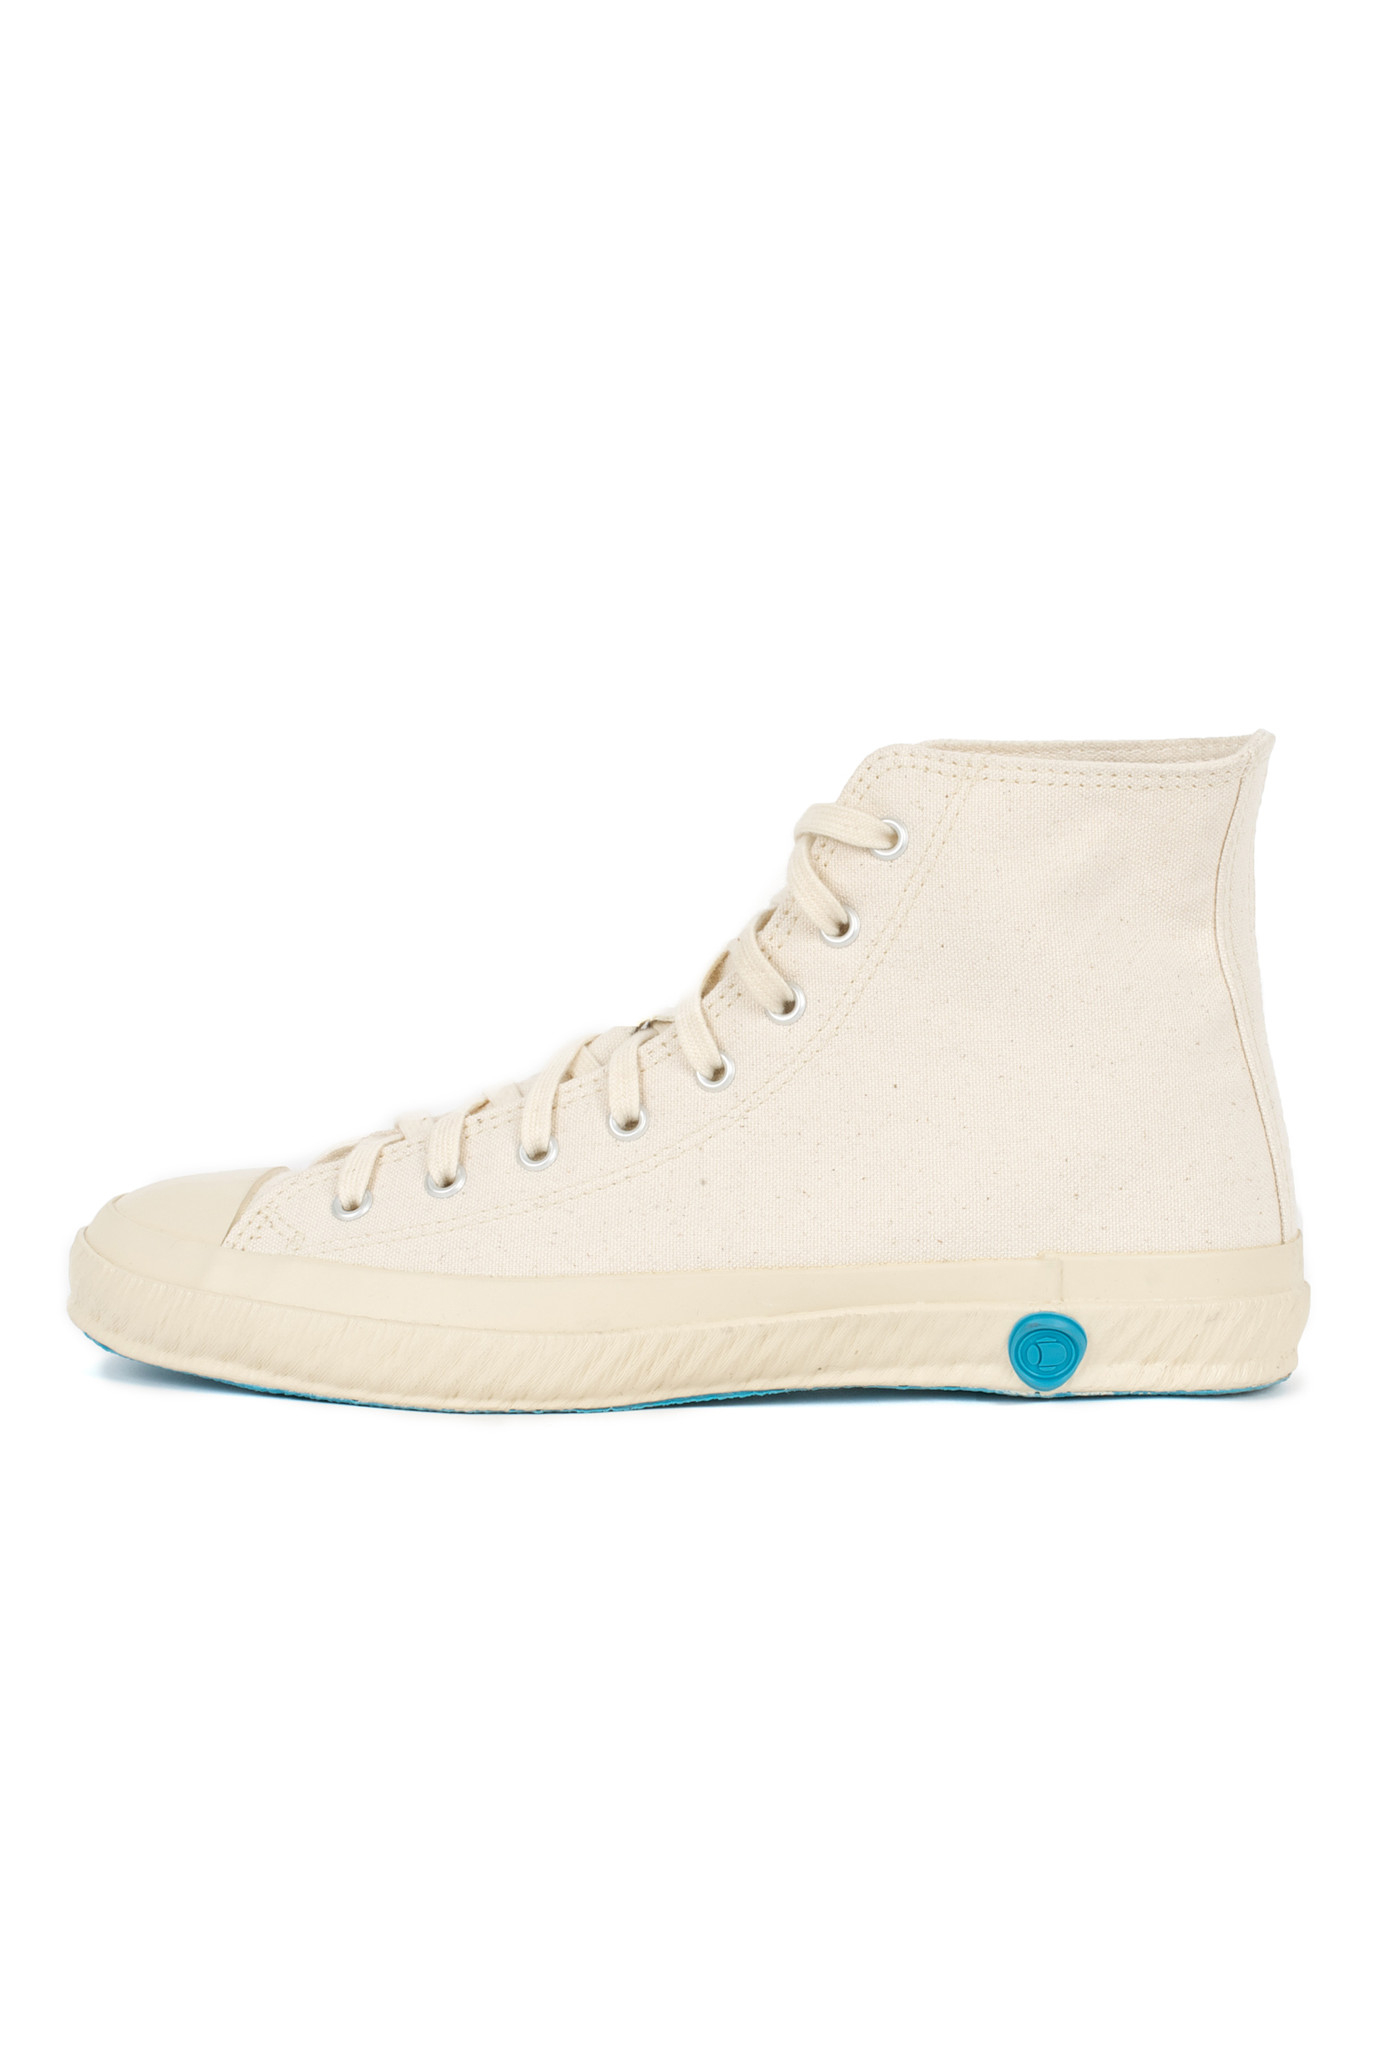 shoes like pottery canvas high top sneaker in